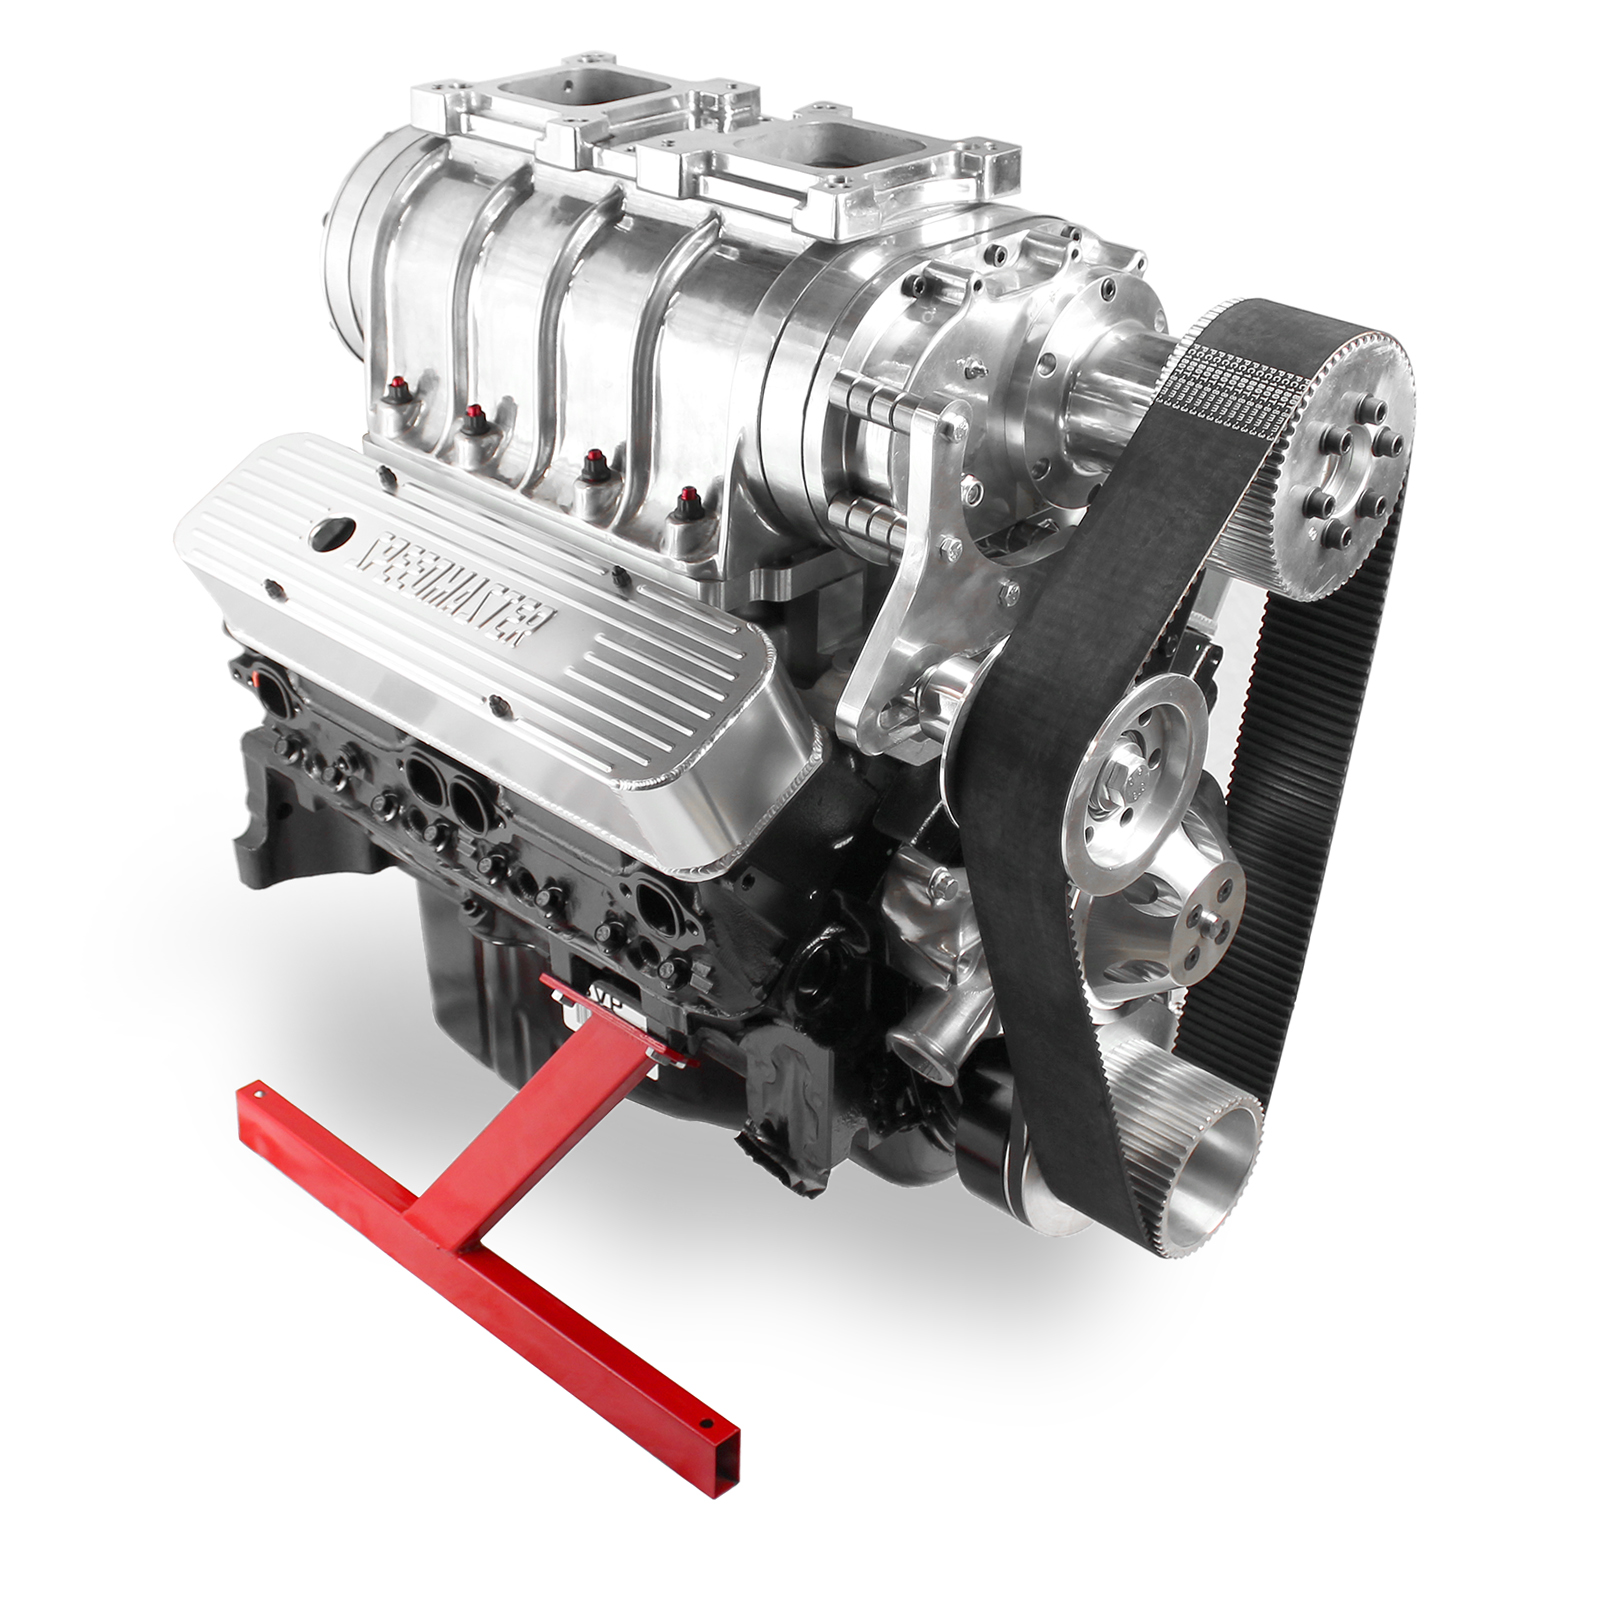 Pce on Chevy Crate Engines With Blower